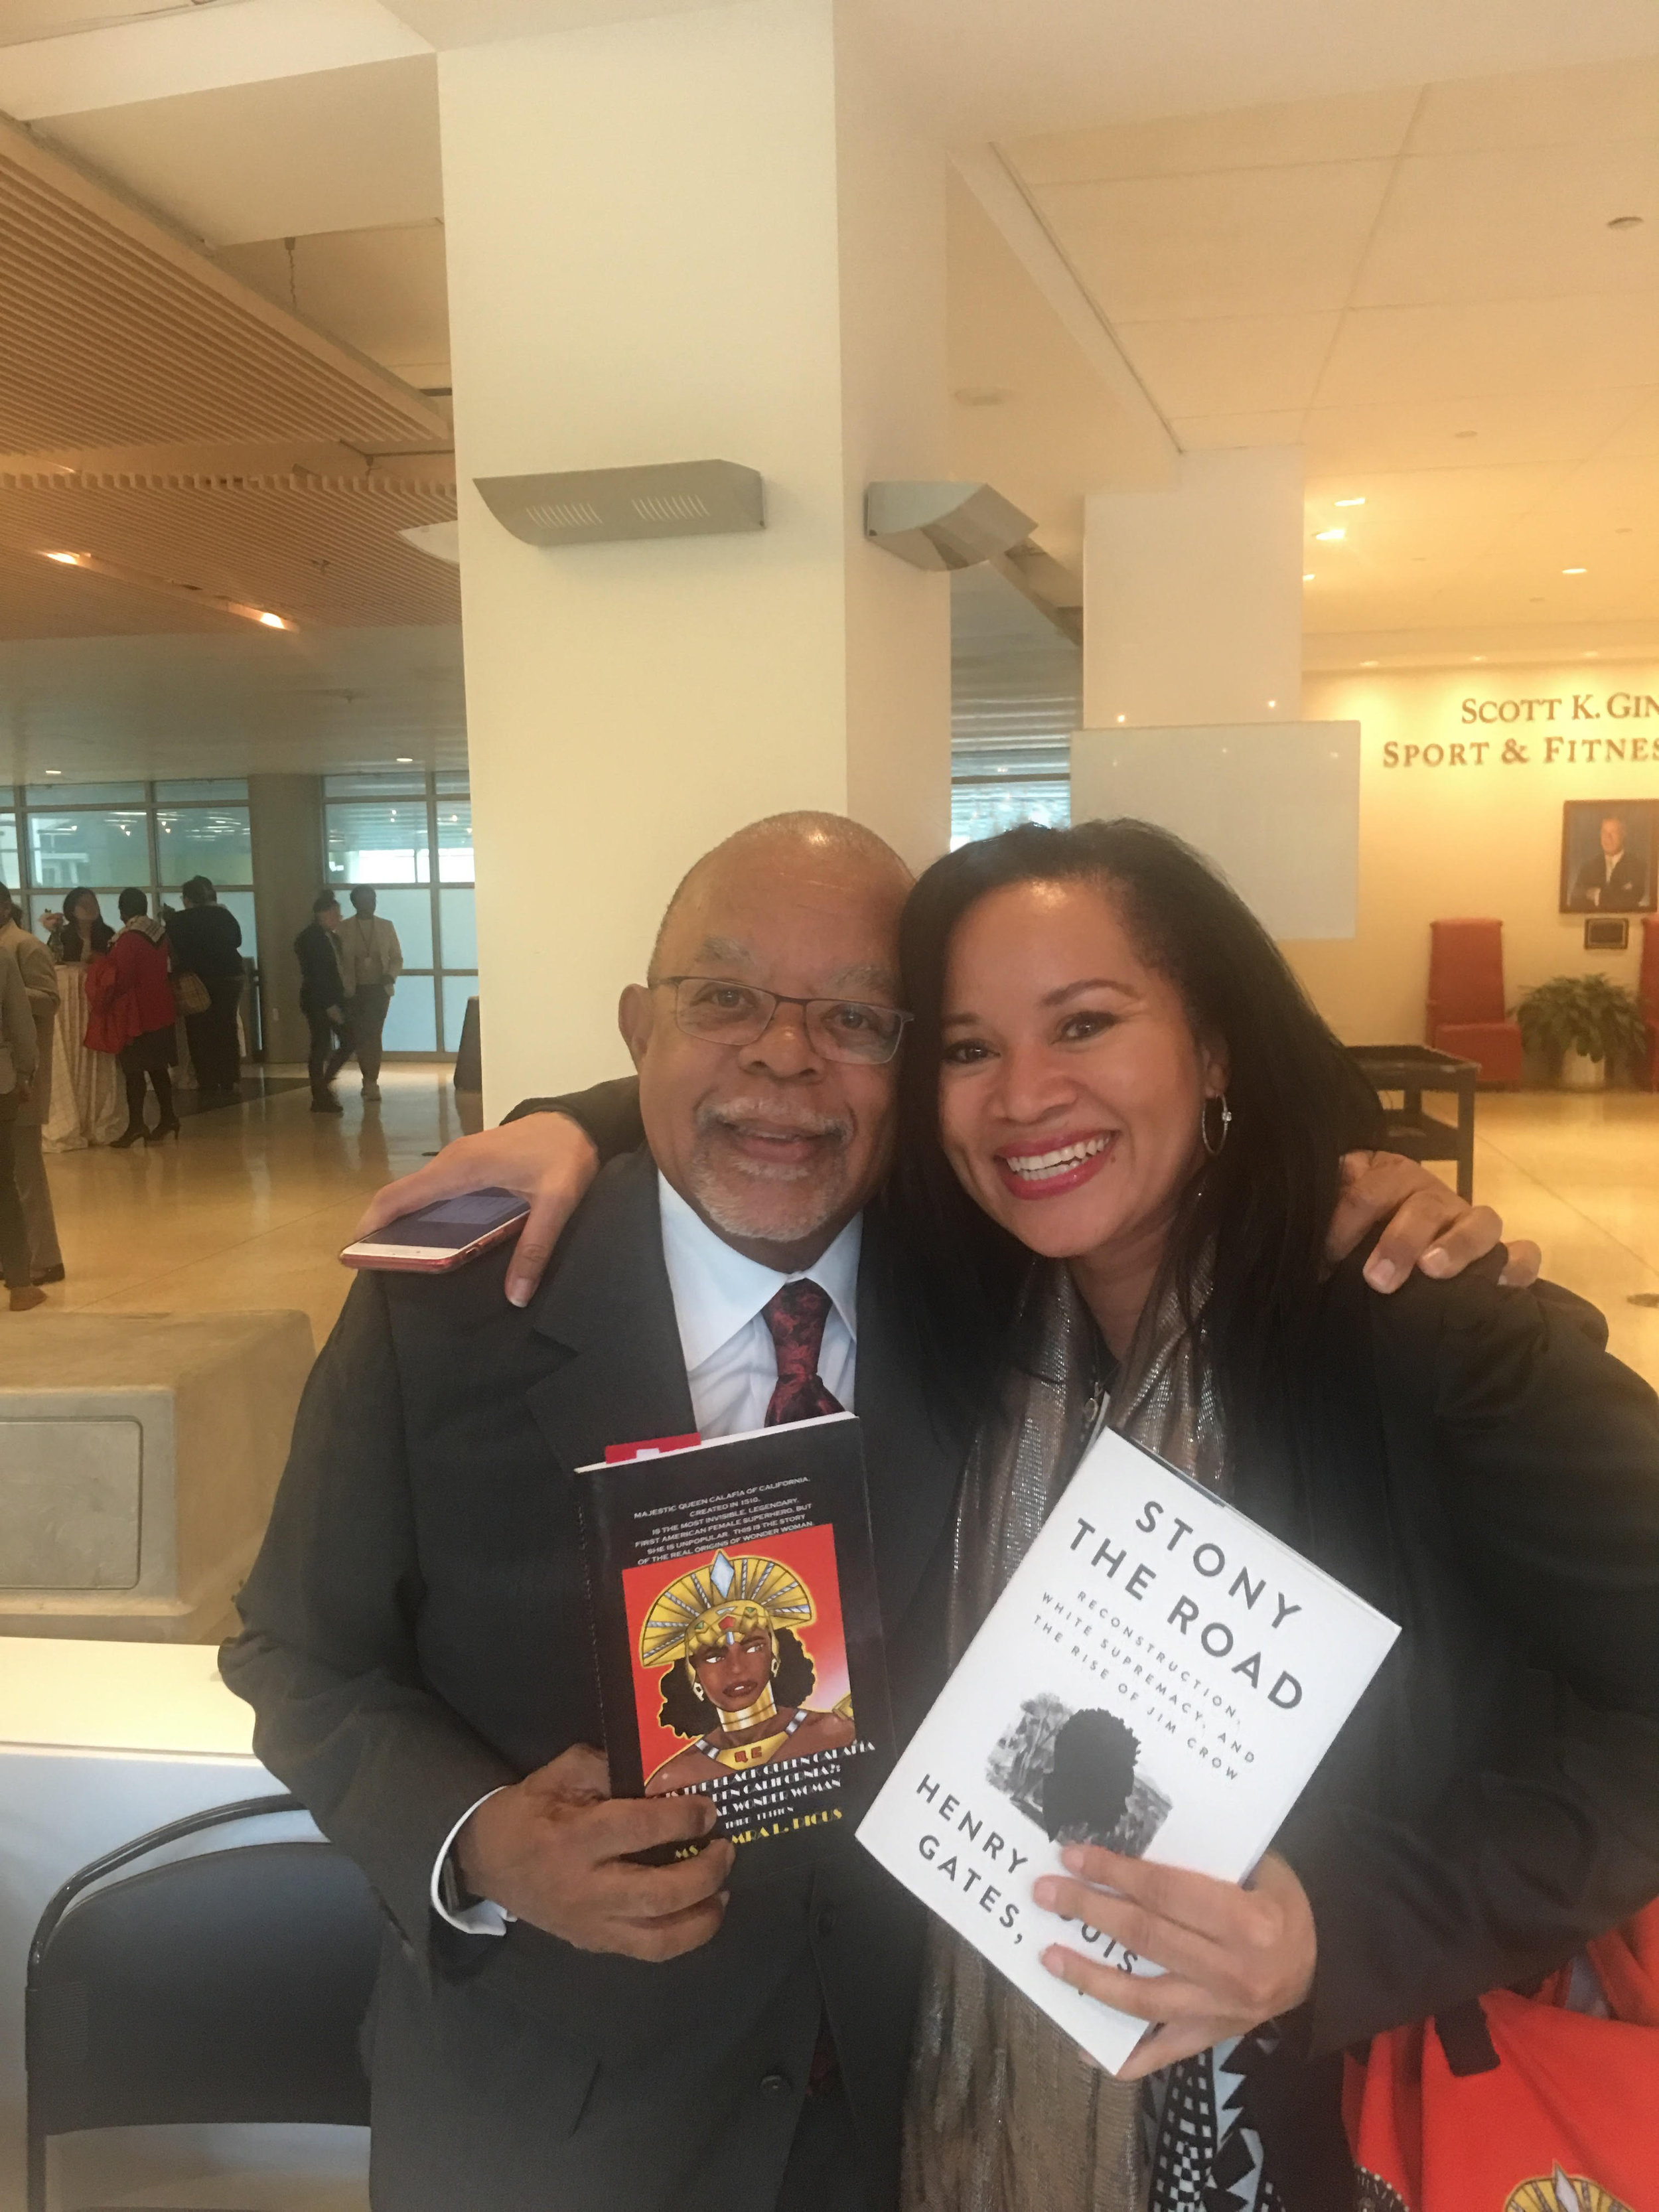 May 14, 2019 Authors Harvard Professor Henry Louis Gates, Jr. and CALIFORNIA IS ME Founder, Tamra L. Dicus at Georgetown Law, Washington, D.C. Source: CALIFORNIA IS ME